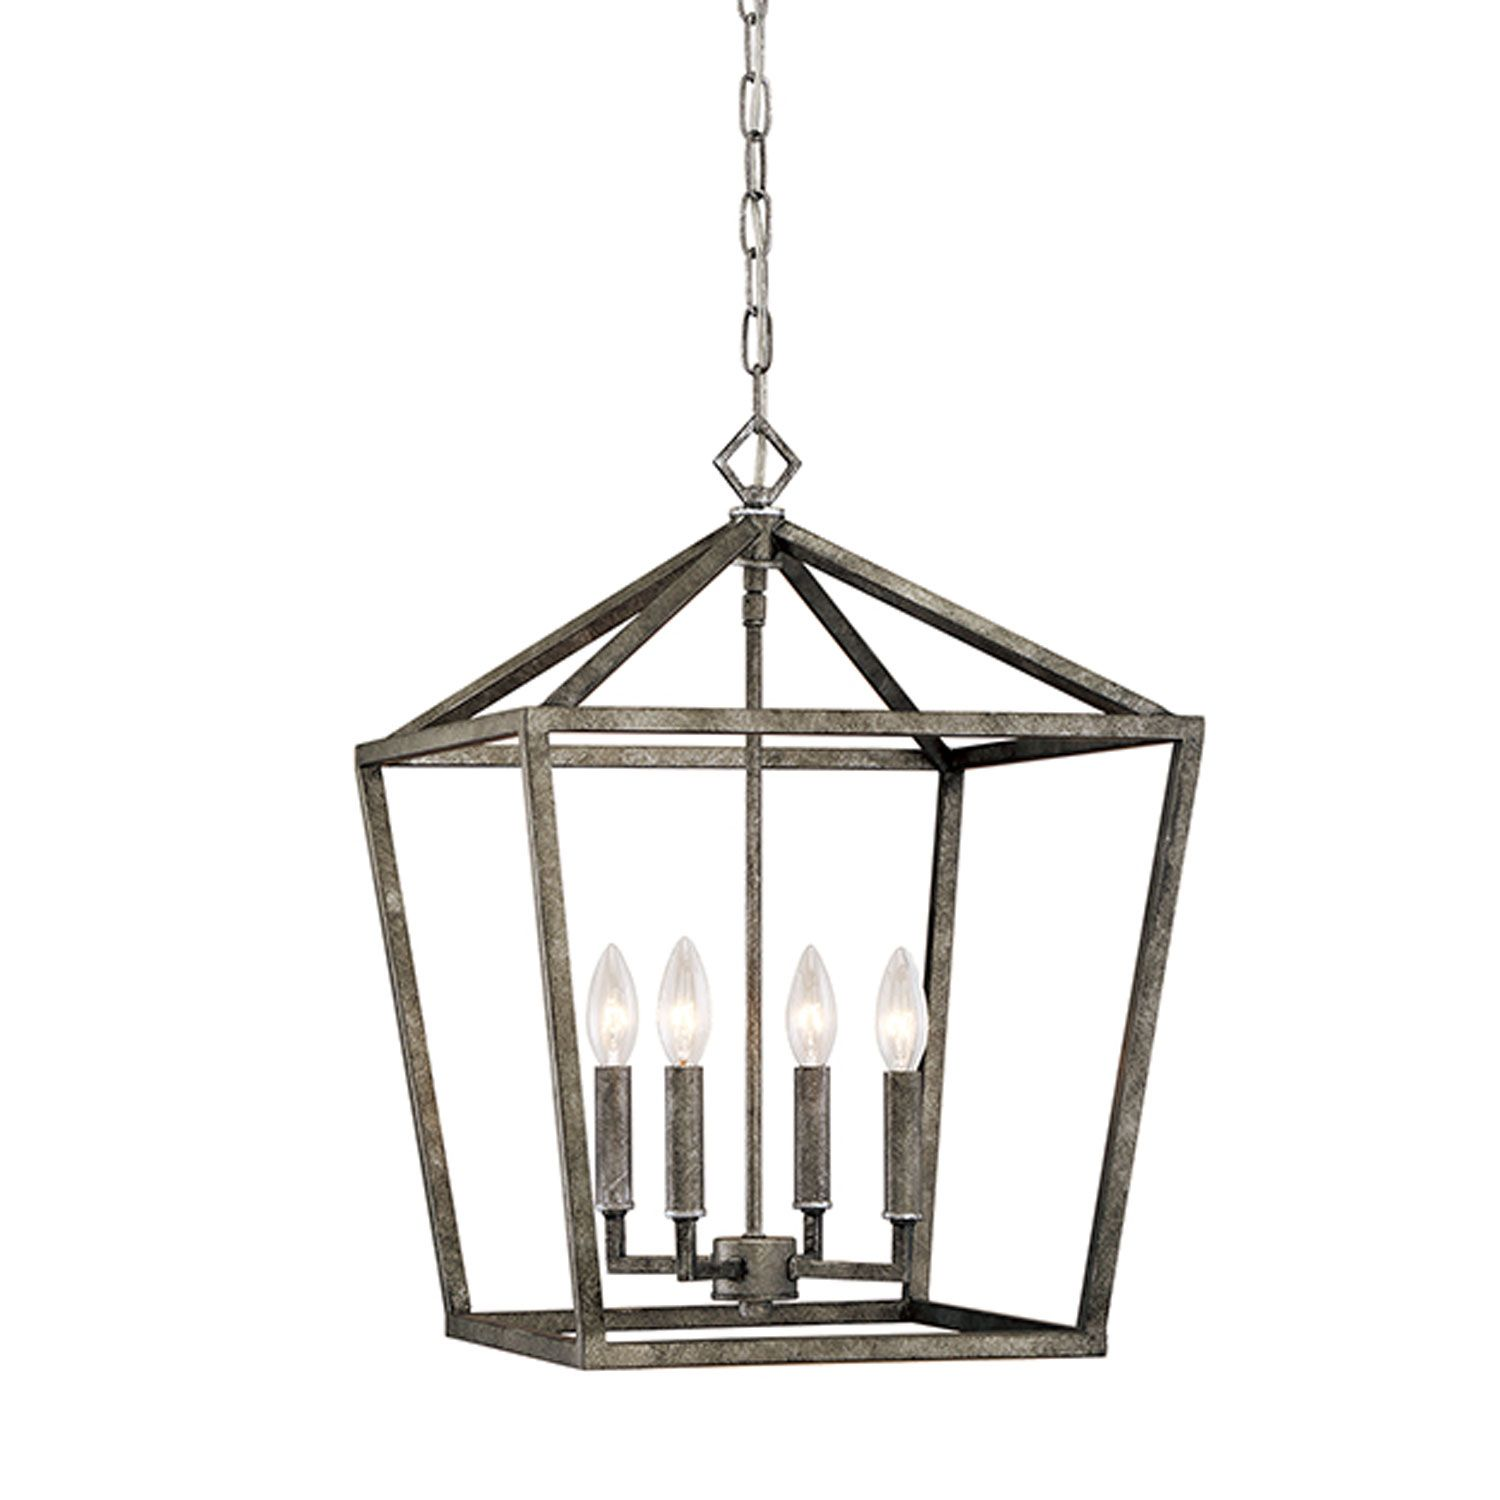 Millennium lighting antique silver 16 inch four light pendant antique silver 16 inch four light pendant millennium lighting lantern pendant lighting cei arubaitofo Gallery